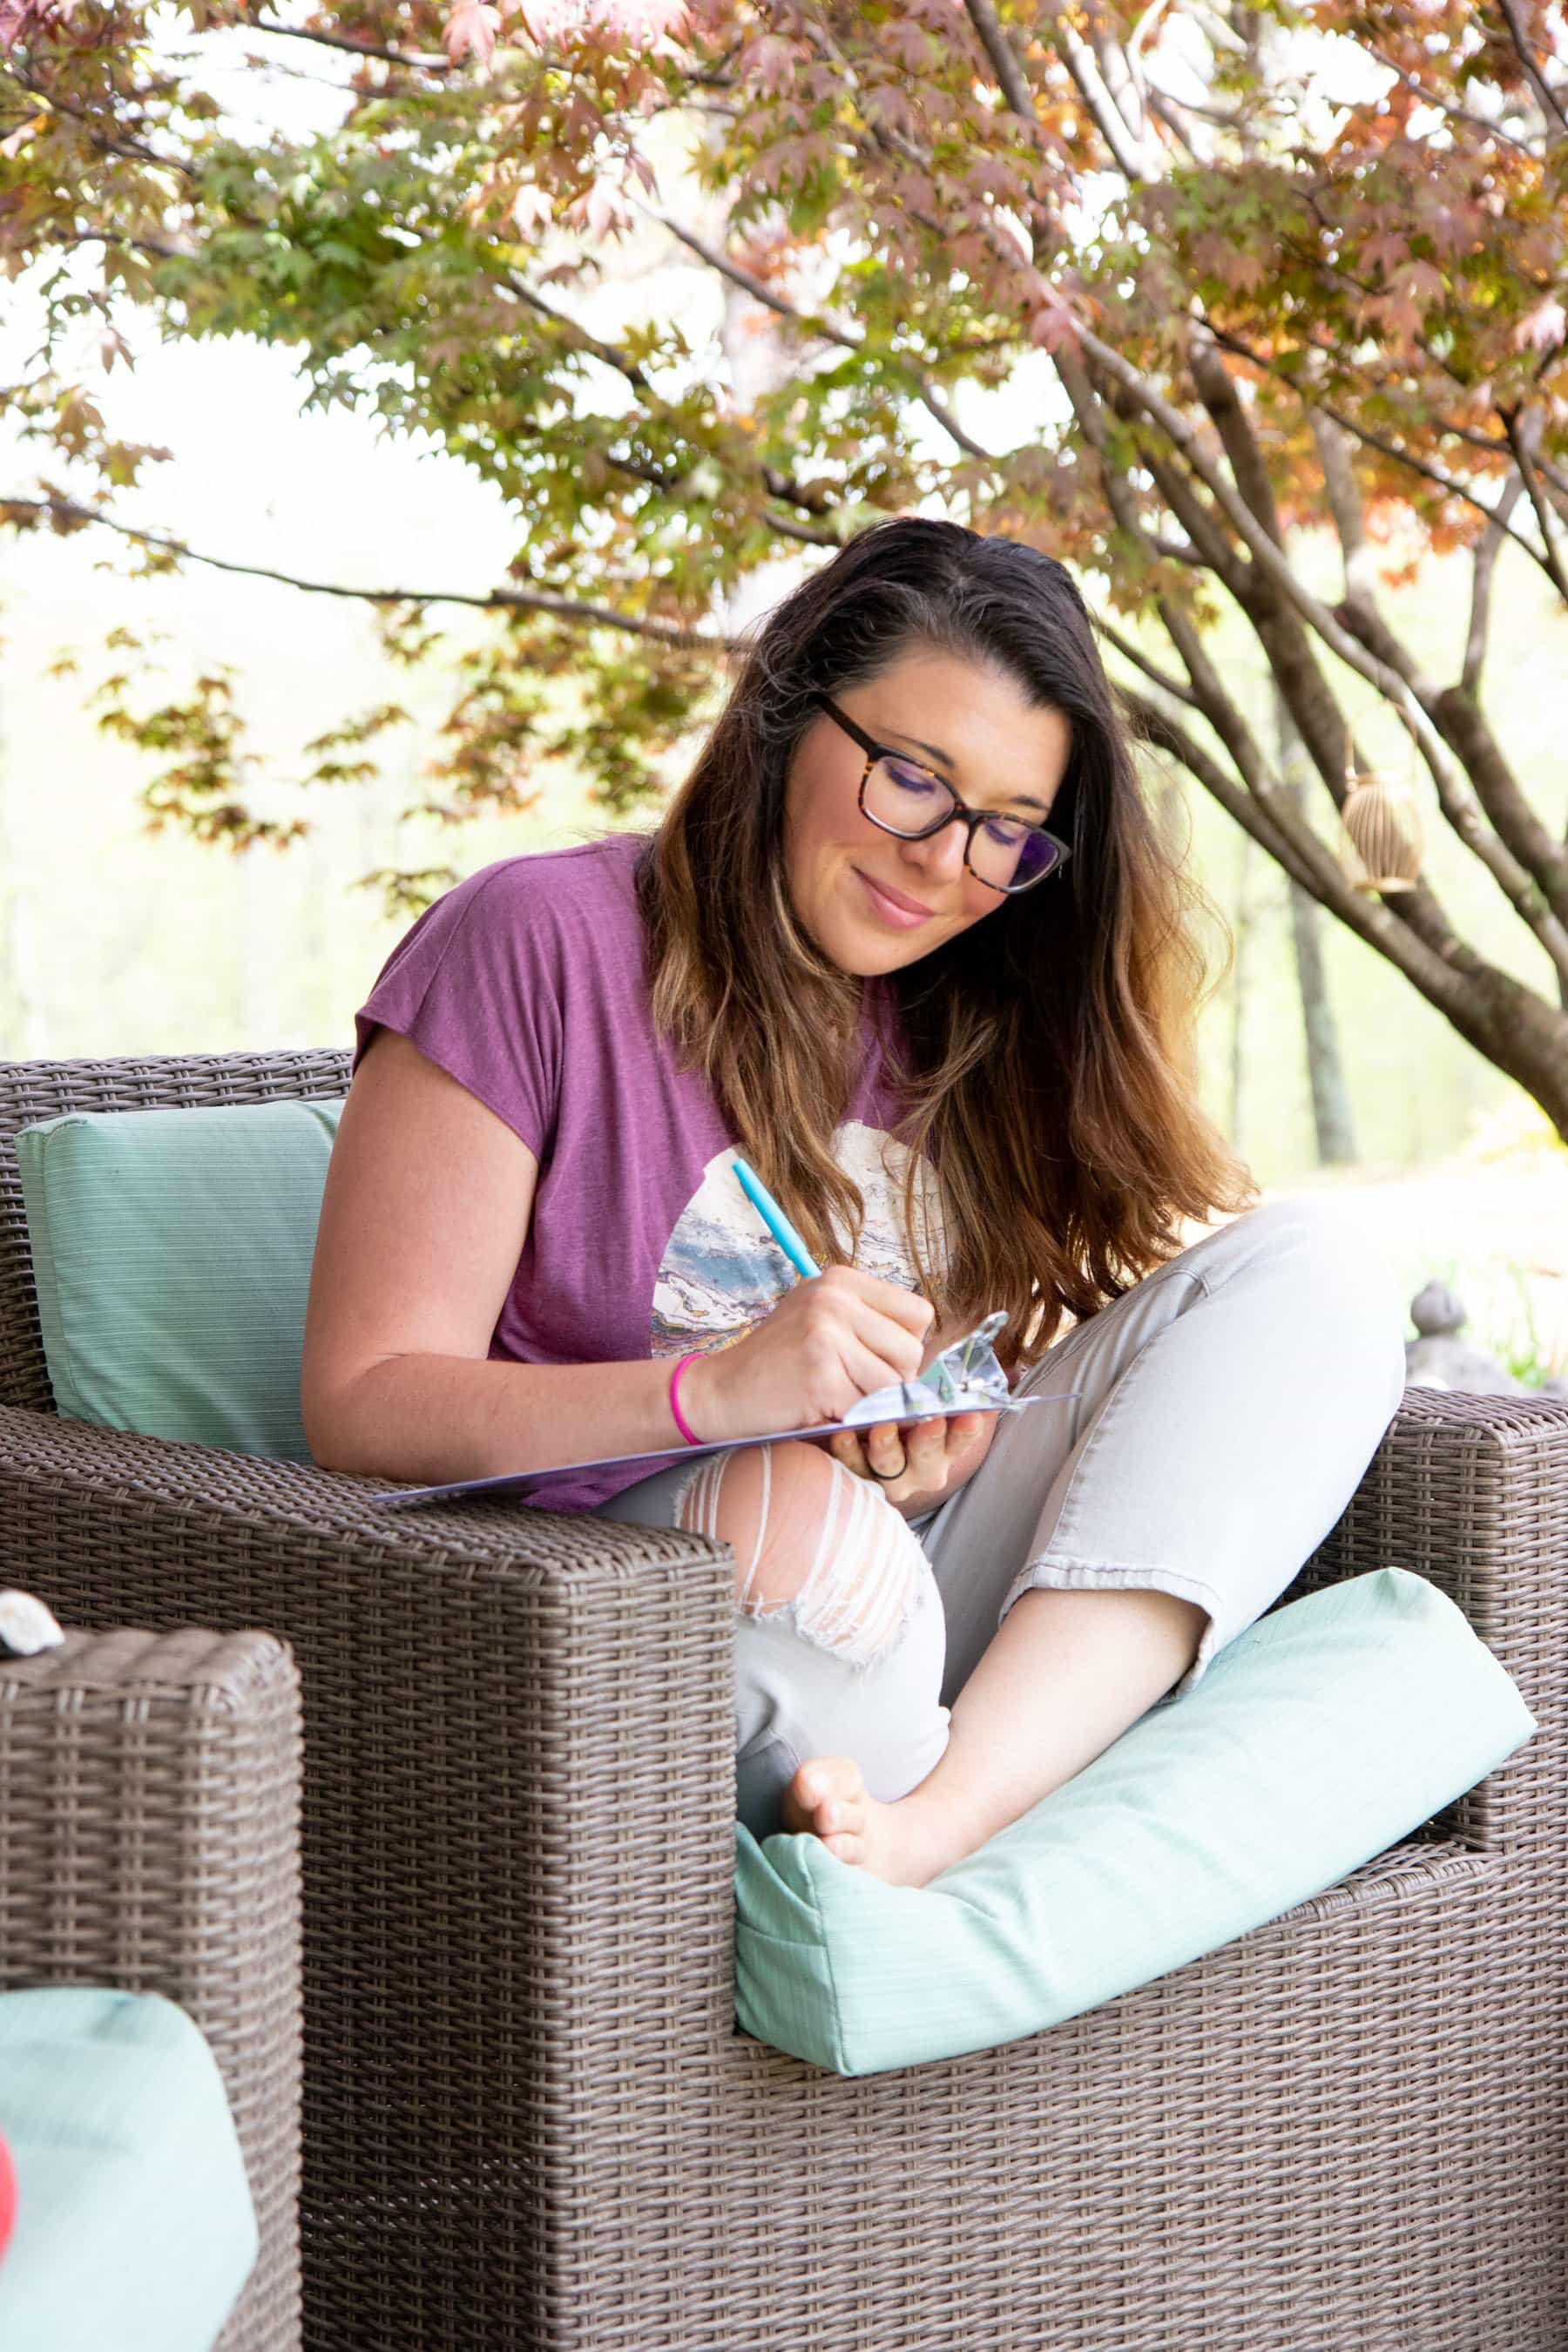 A woman sits outside under a tree on a patio couch crosslegged while writing on a clipboard.